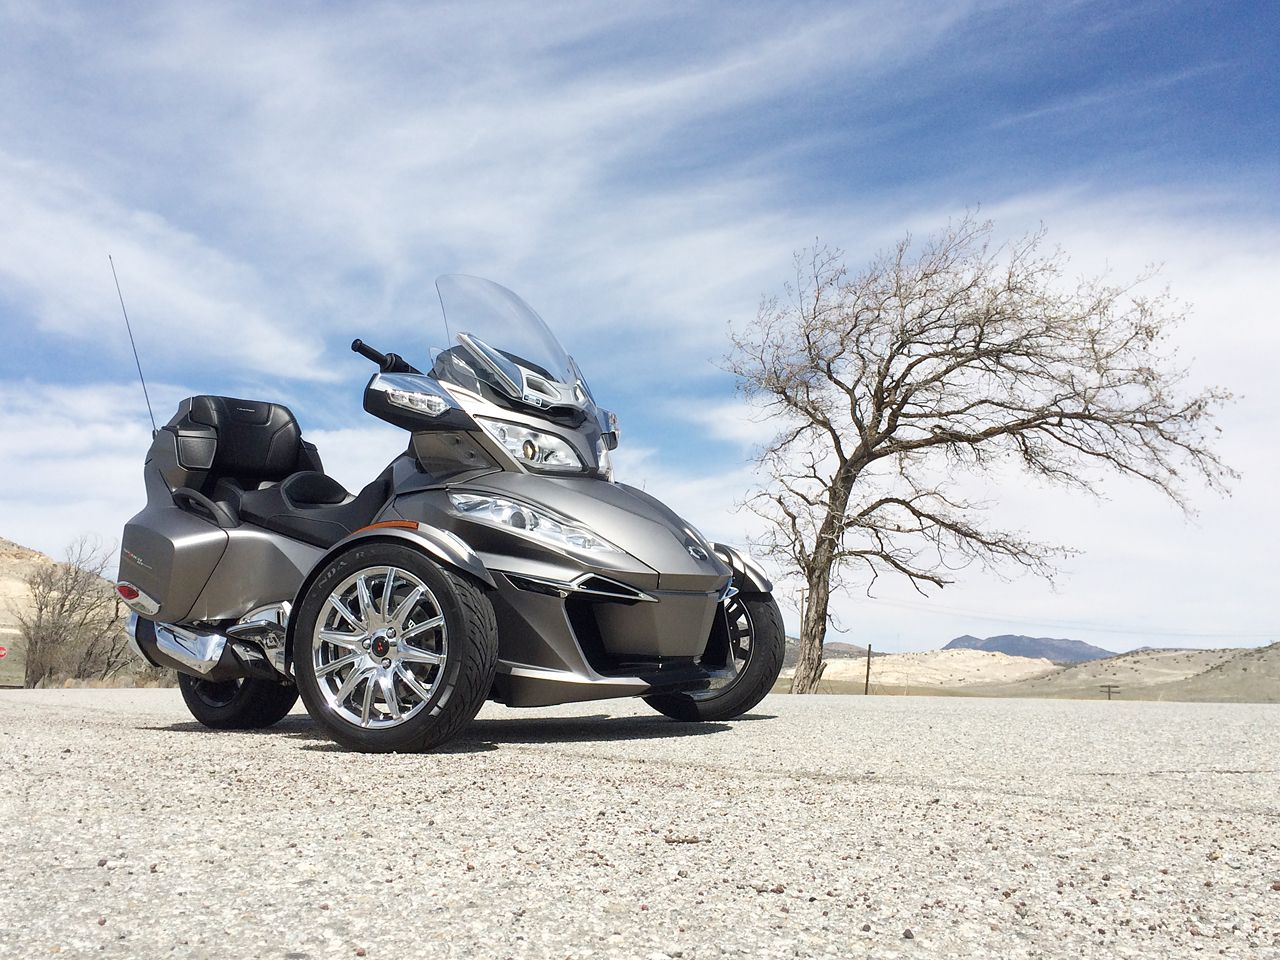 2014 can am spyder rt limited review riding triple. Black Bedroom Furniture Sets. Home Design Ideas